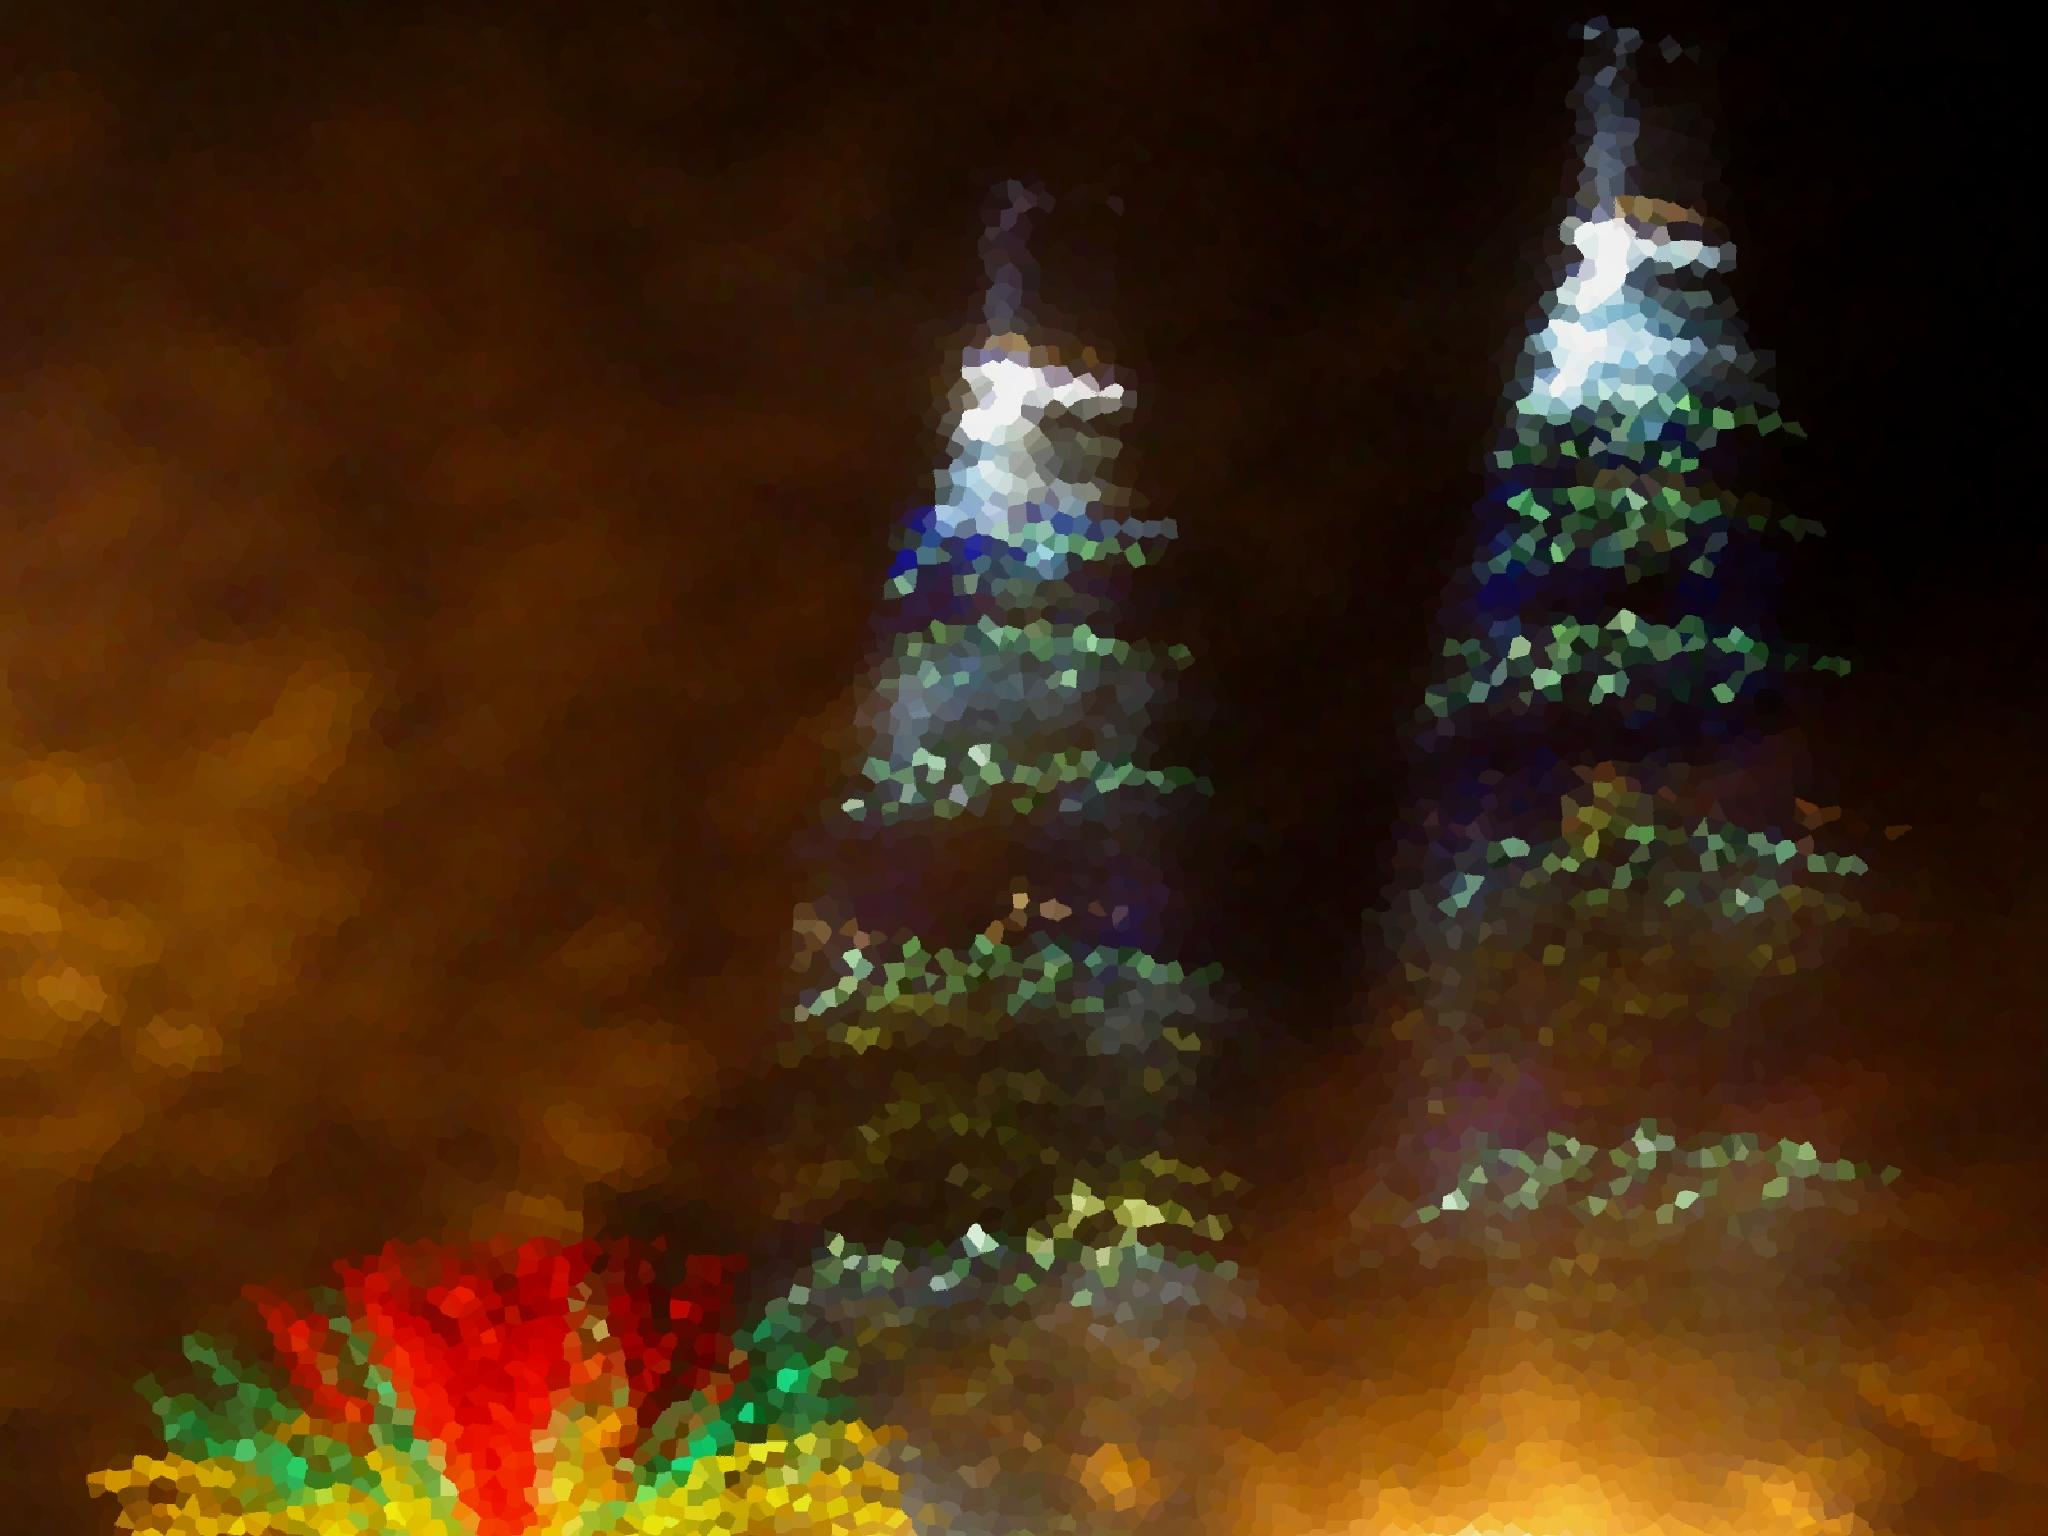 Two towers by sachin sawhney